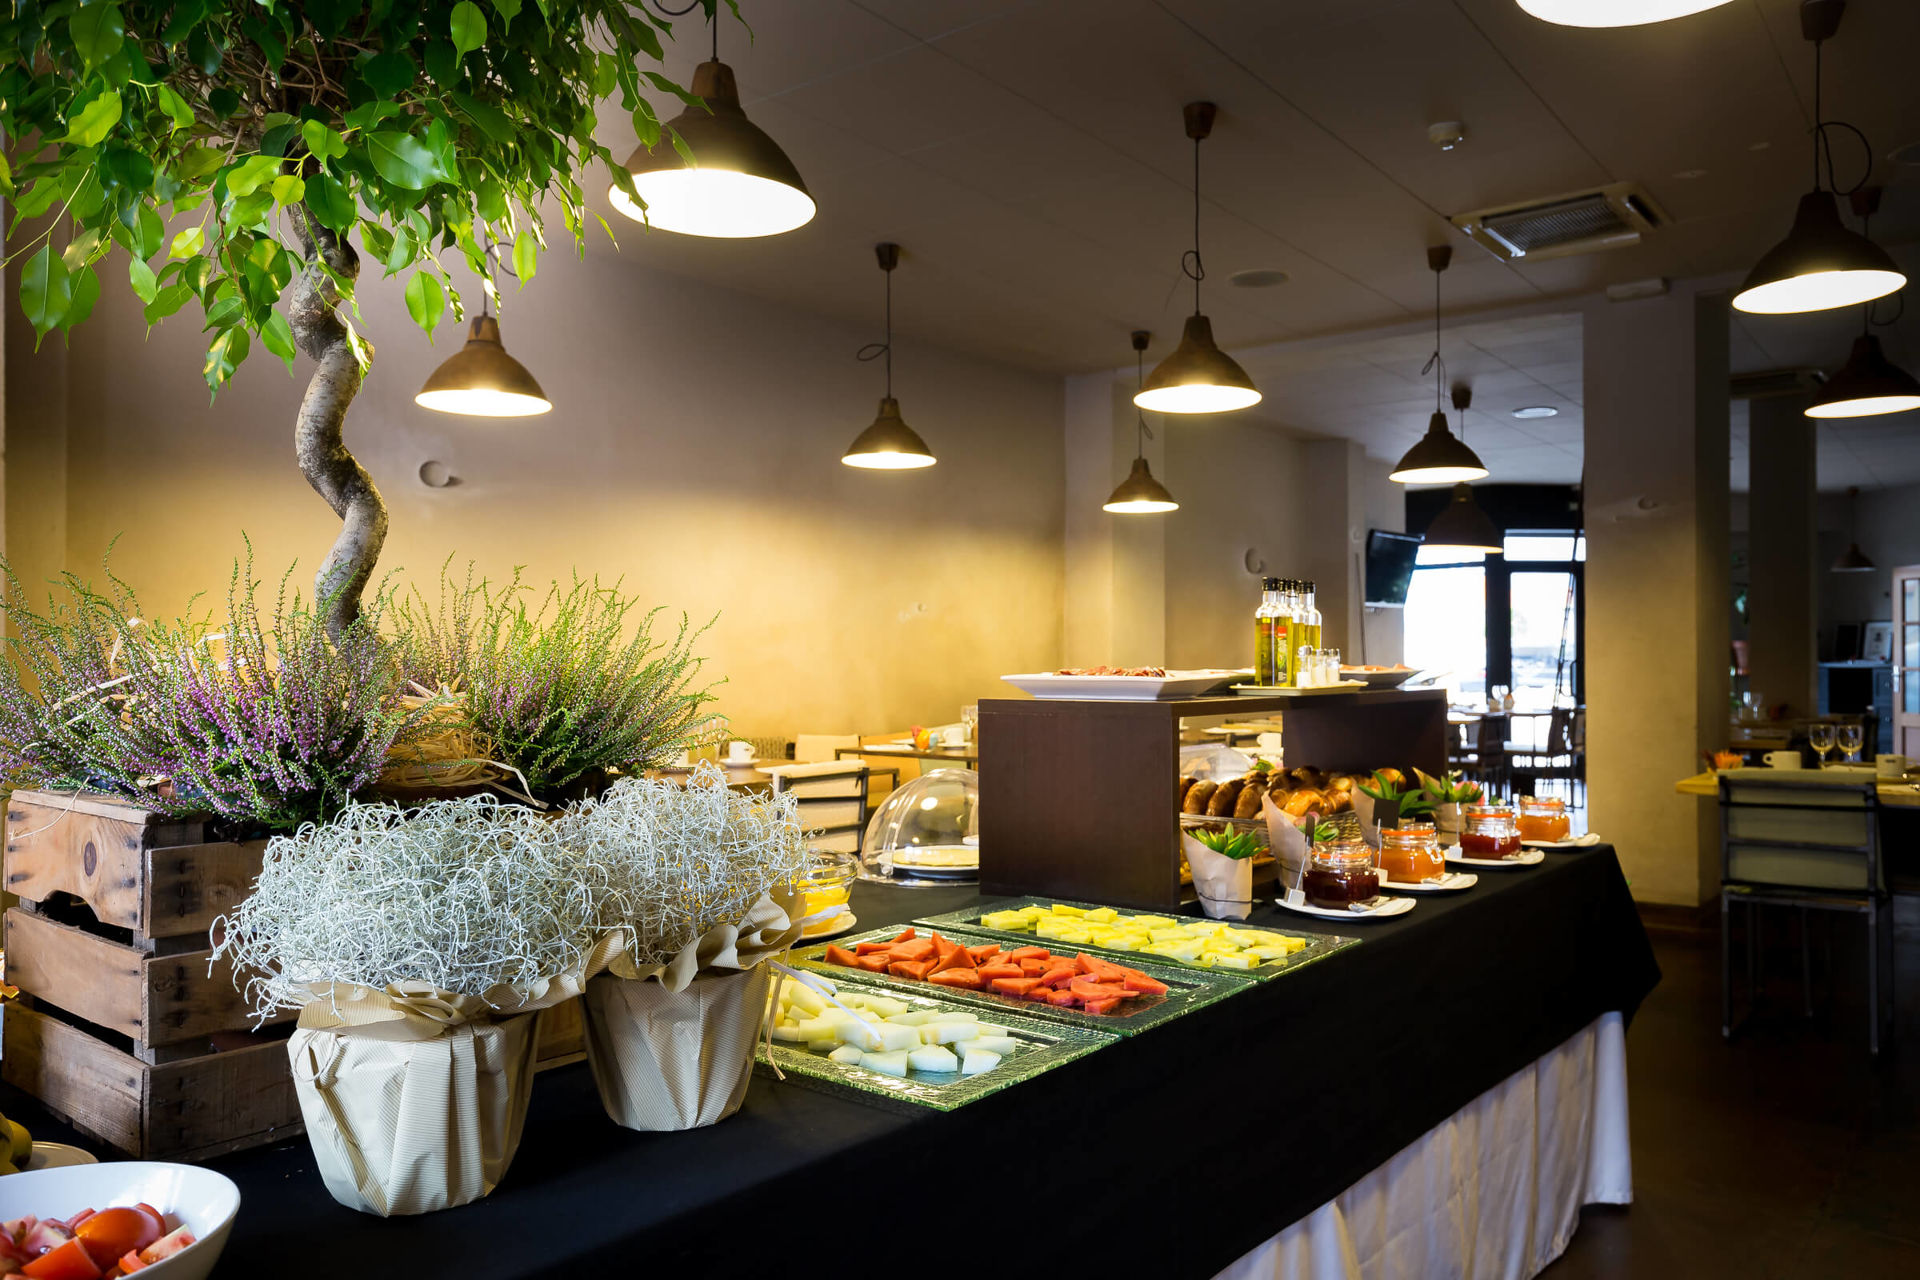 Have a healthy breakfast in our buffet